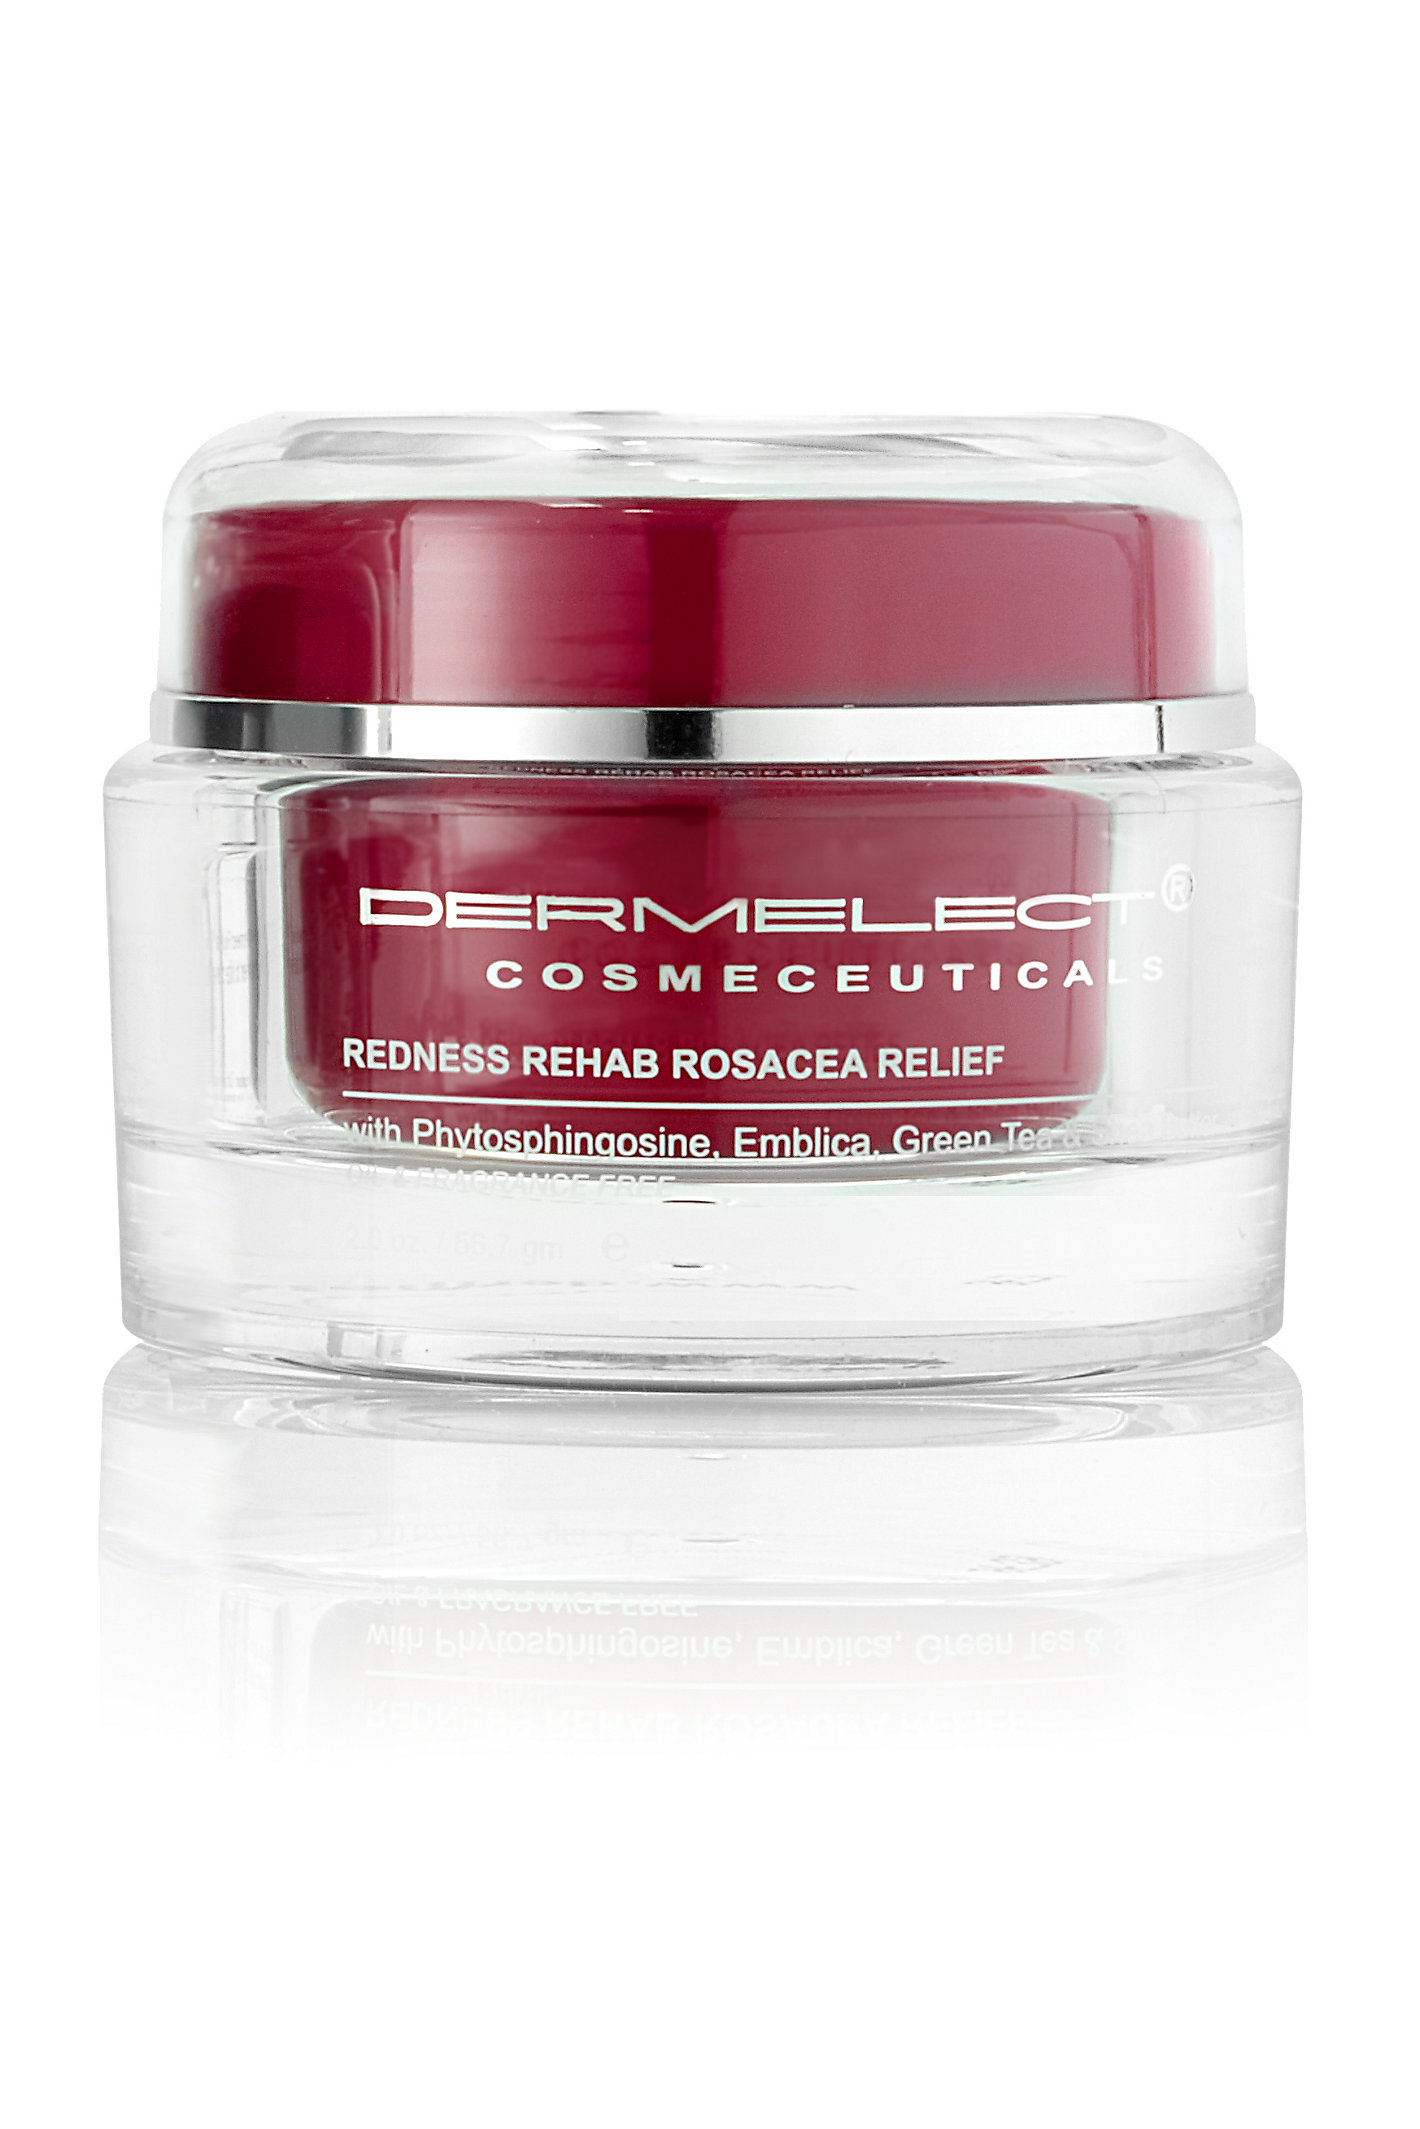 Redness Rehab Rosacea Relief